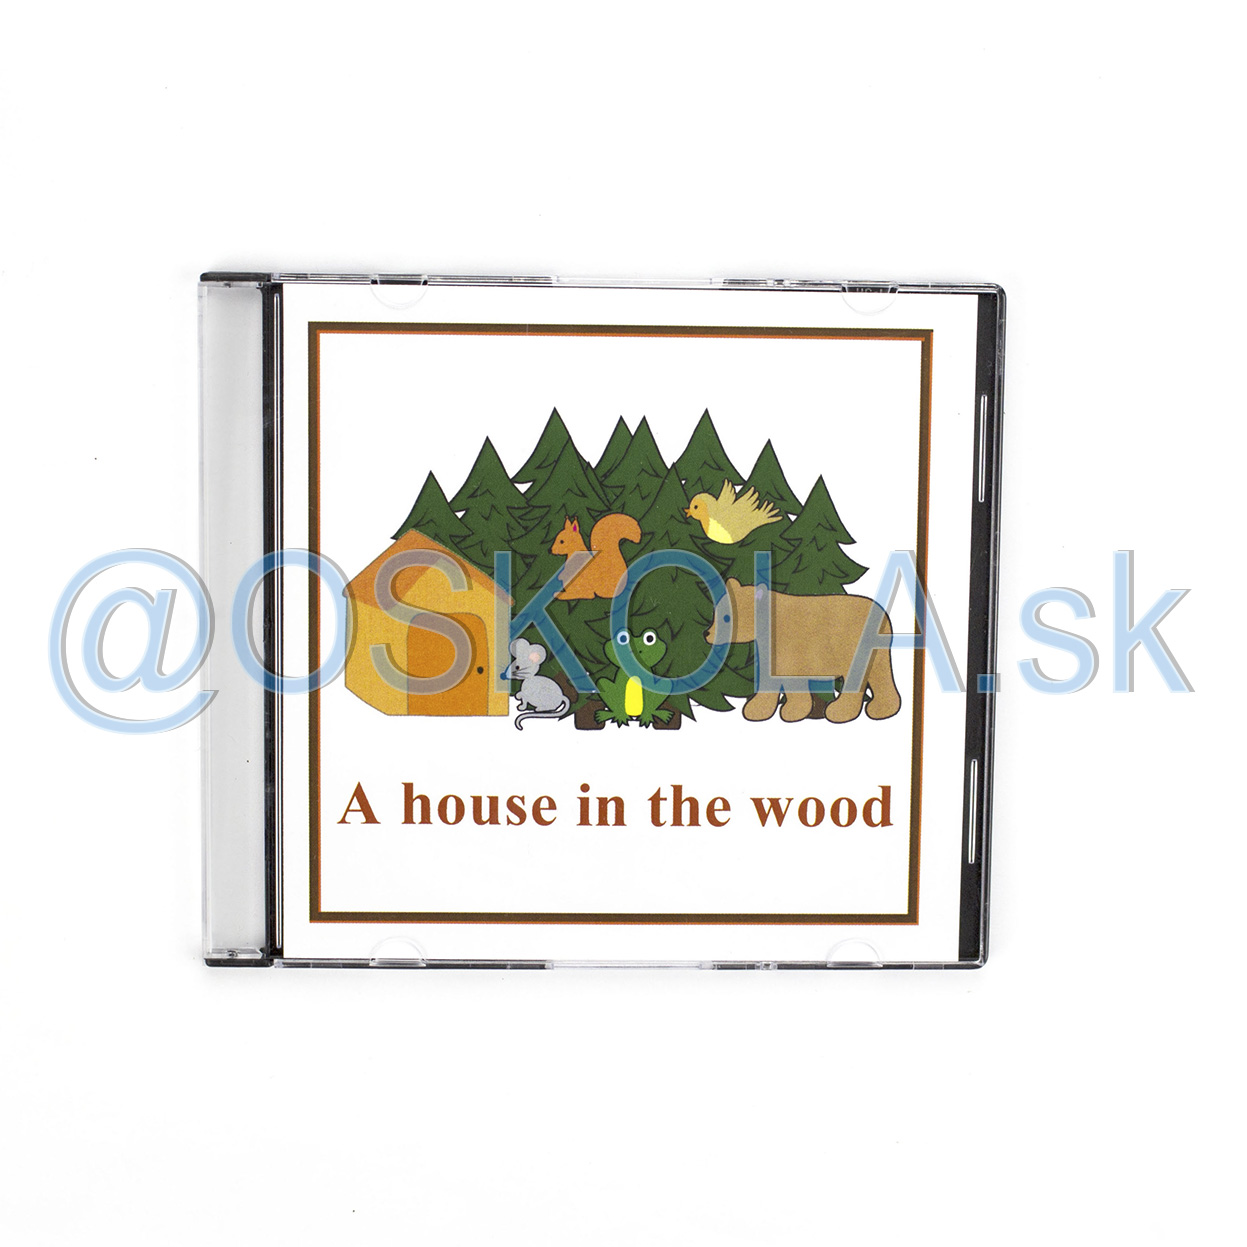 CD - A house in the wood